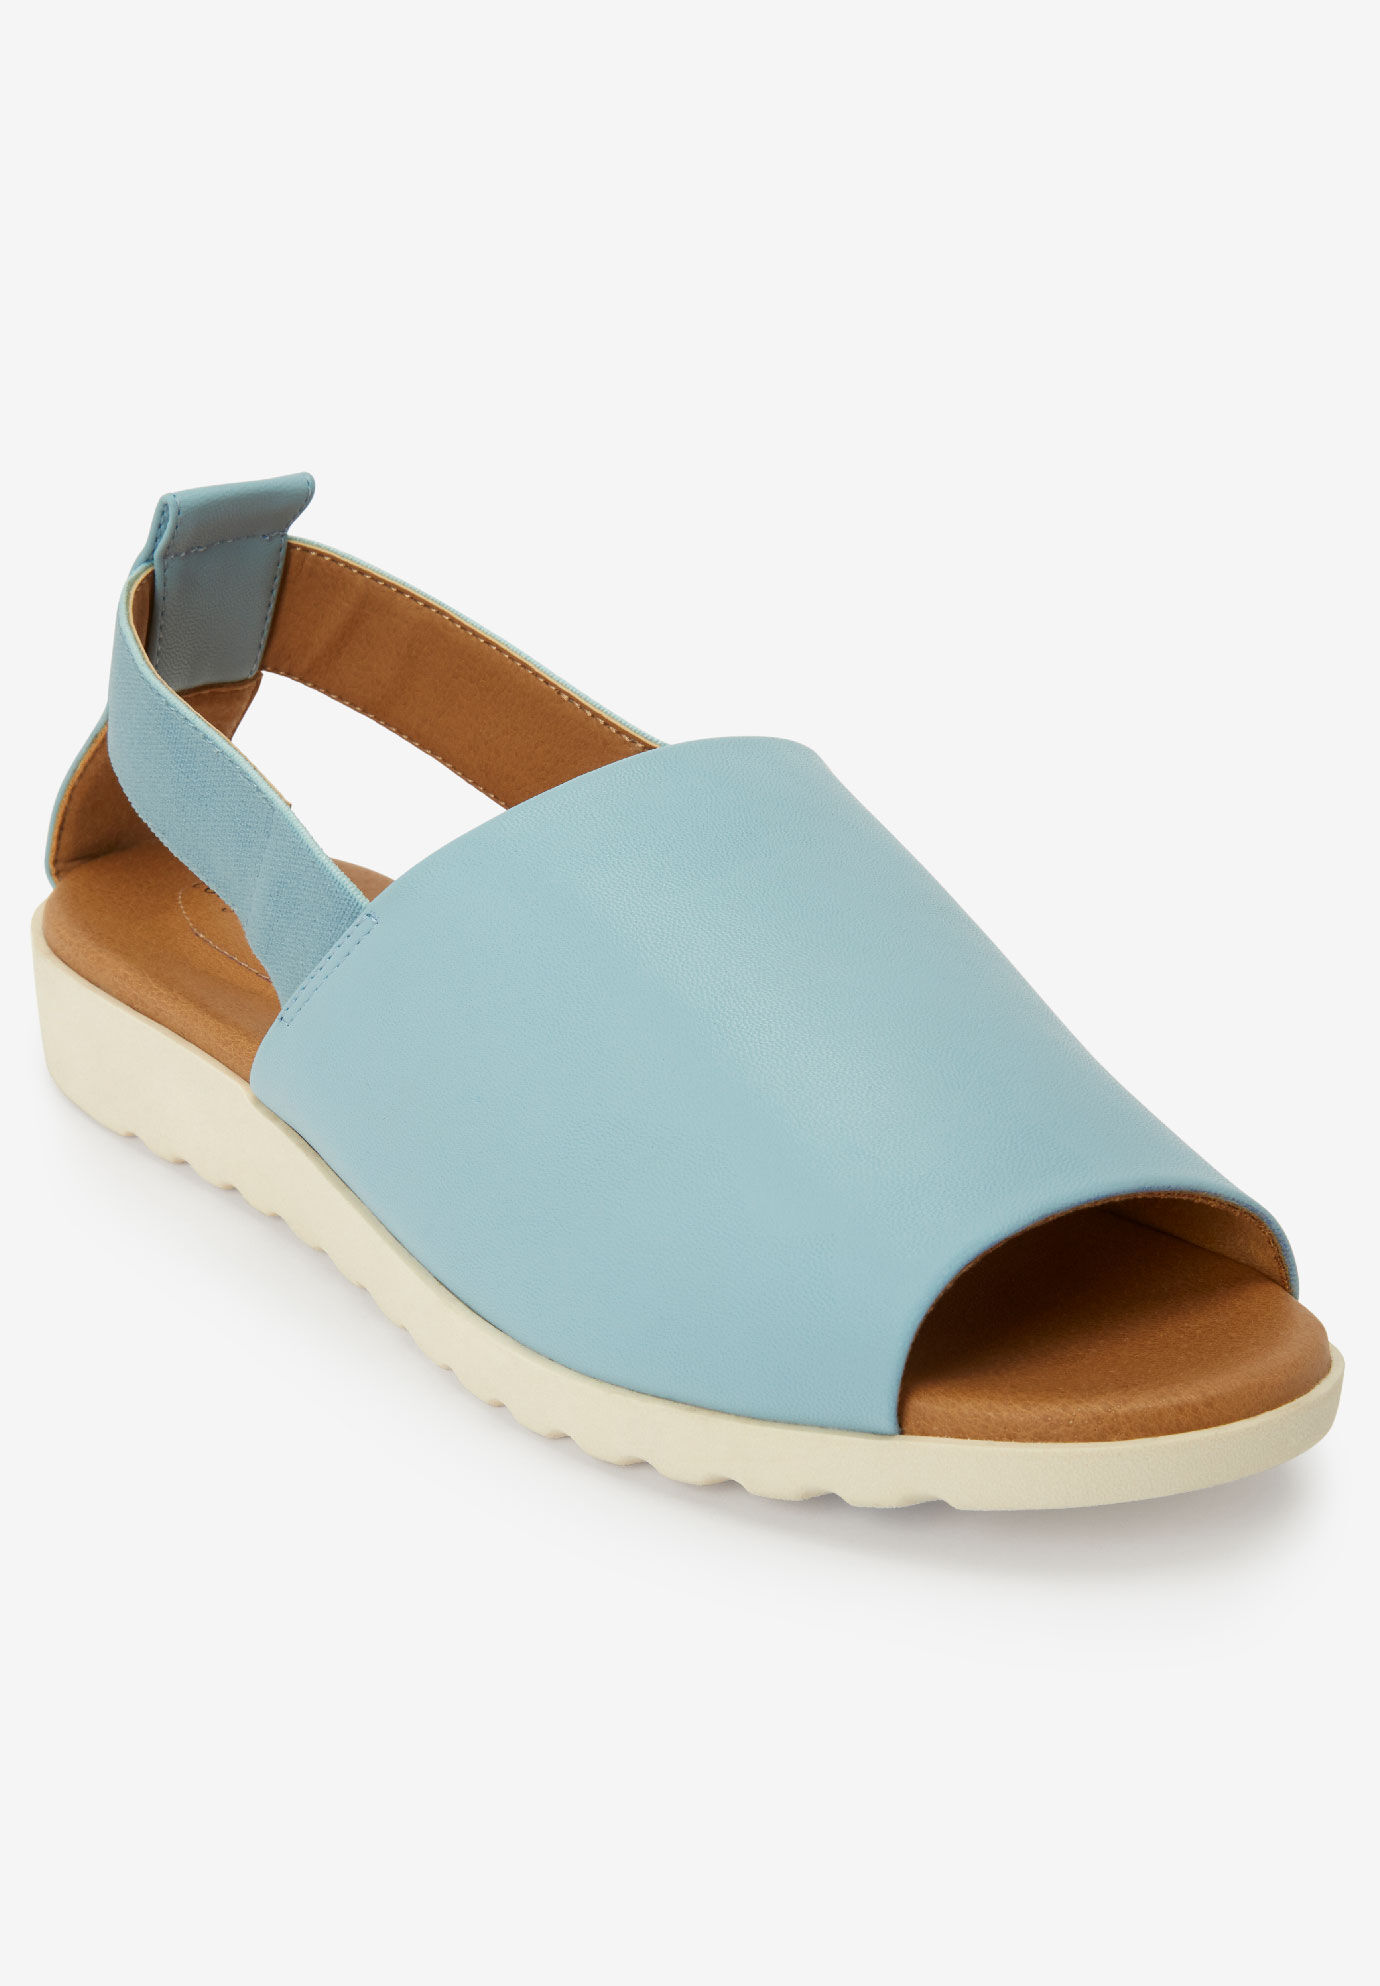 Wide Width Casual Sandals for Women